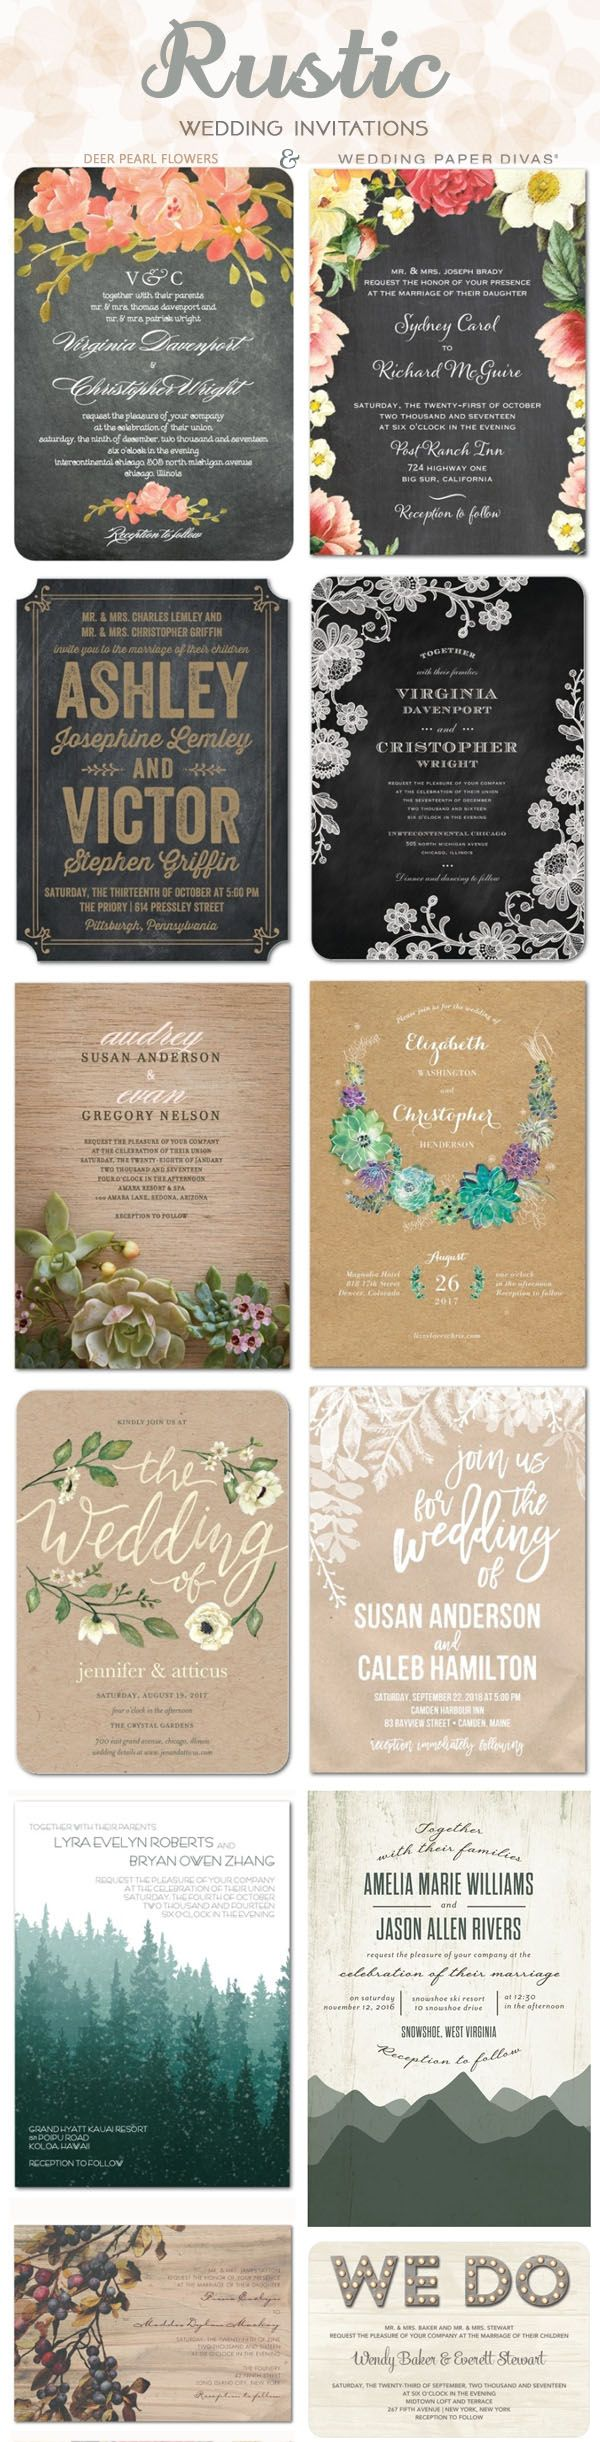 ideas for country wedding invitations%0A Trending for       greenery wedding invitations from Elli com   Wedding  Bells   Pinterest   Greenery  Weddings and Wedding